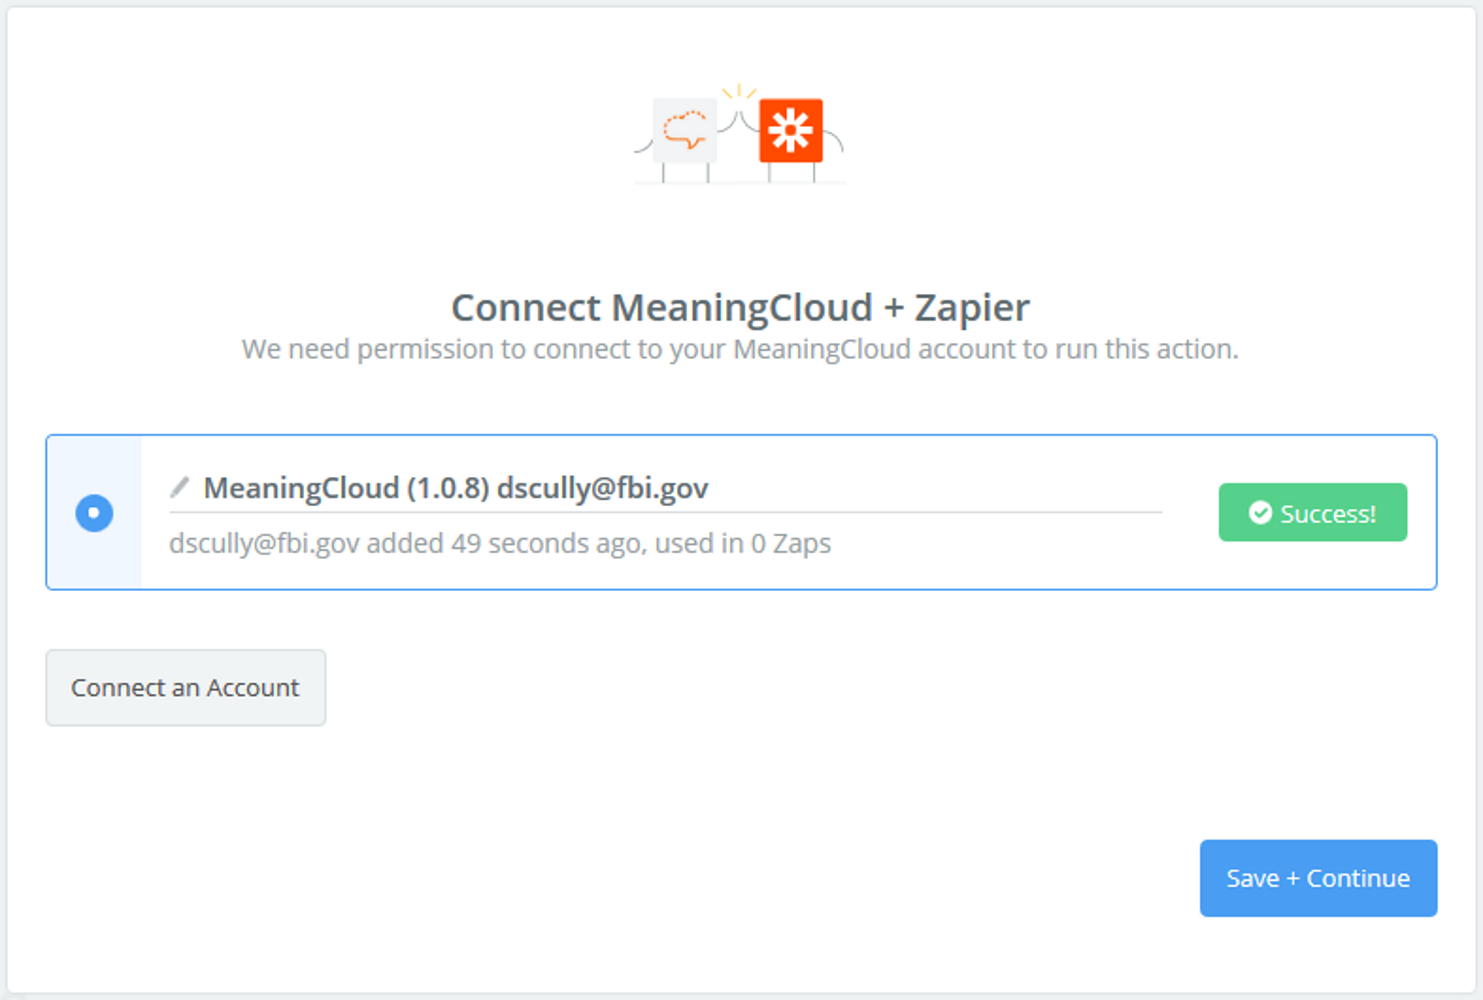 MeaningCloud connection successful